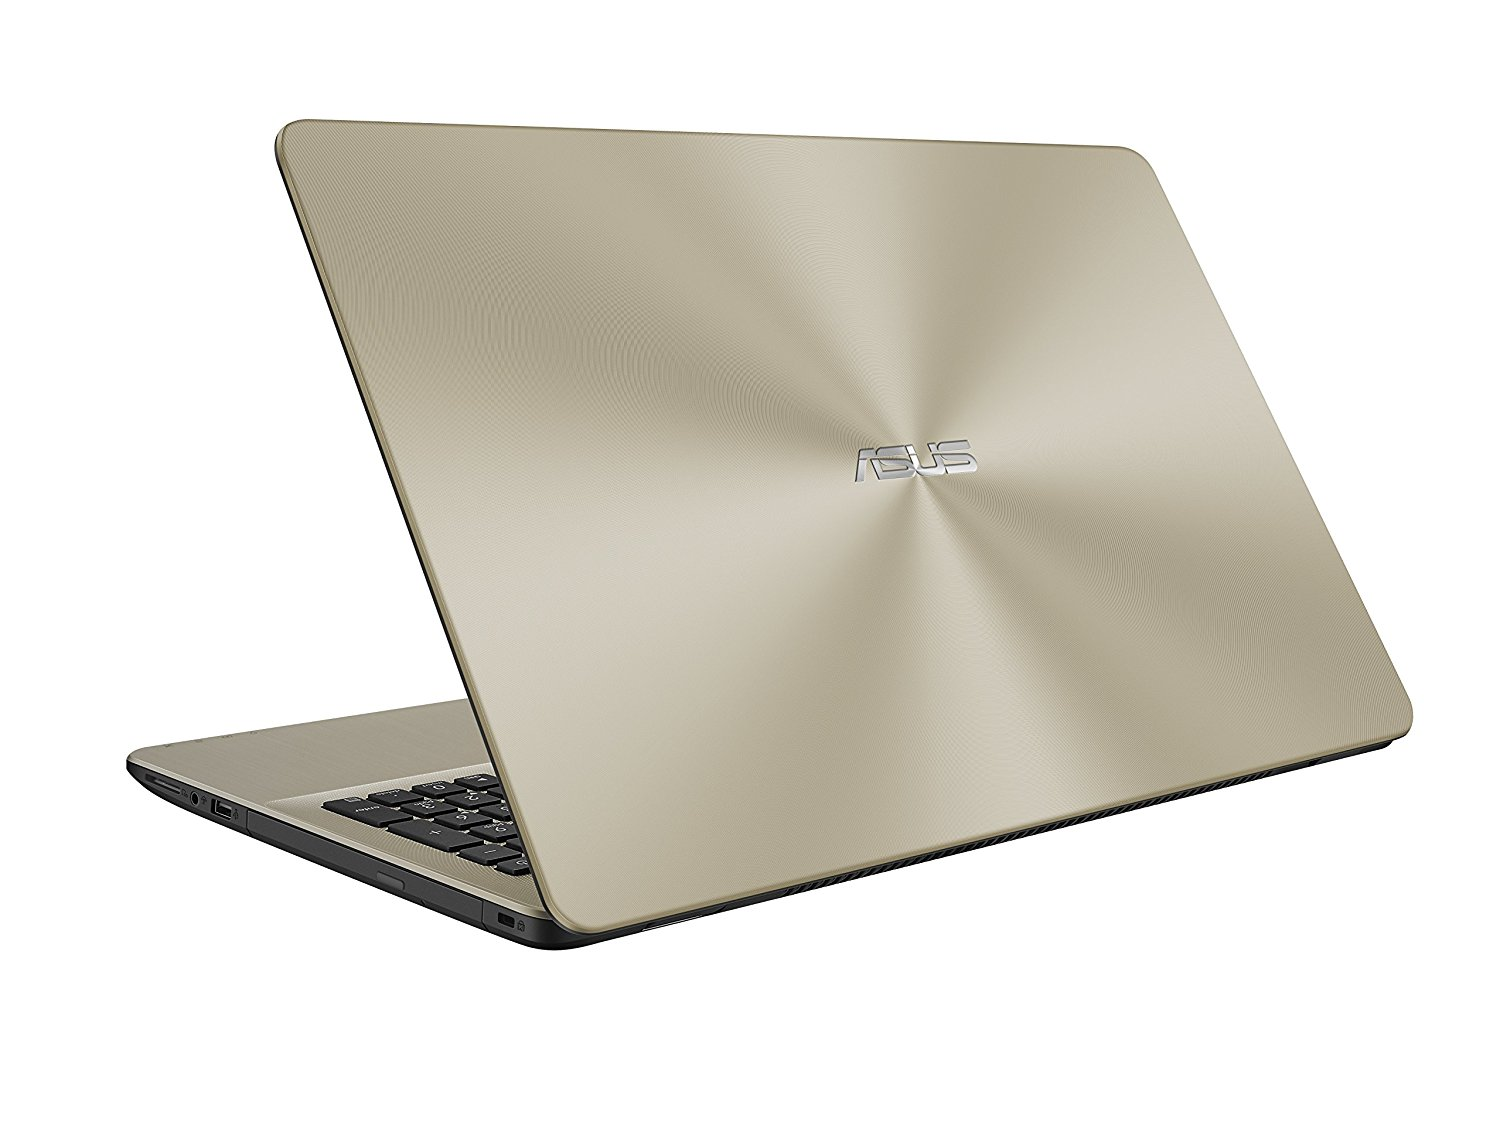 Asus-VivoBook-Notebook-2